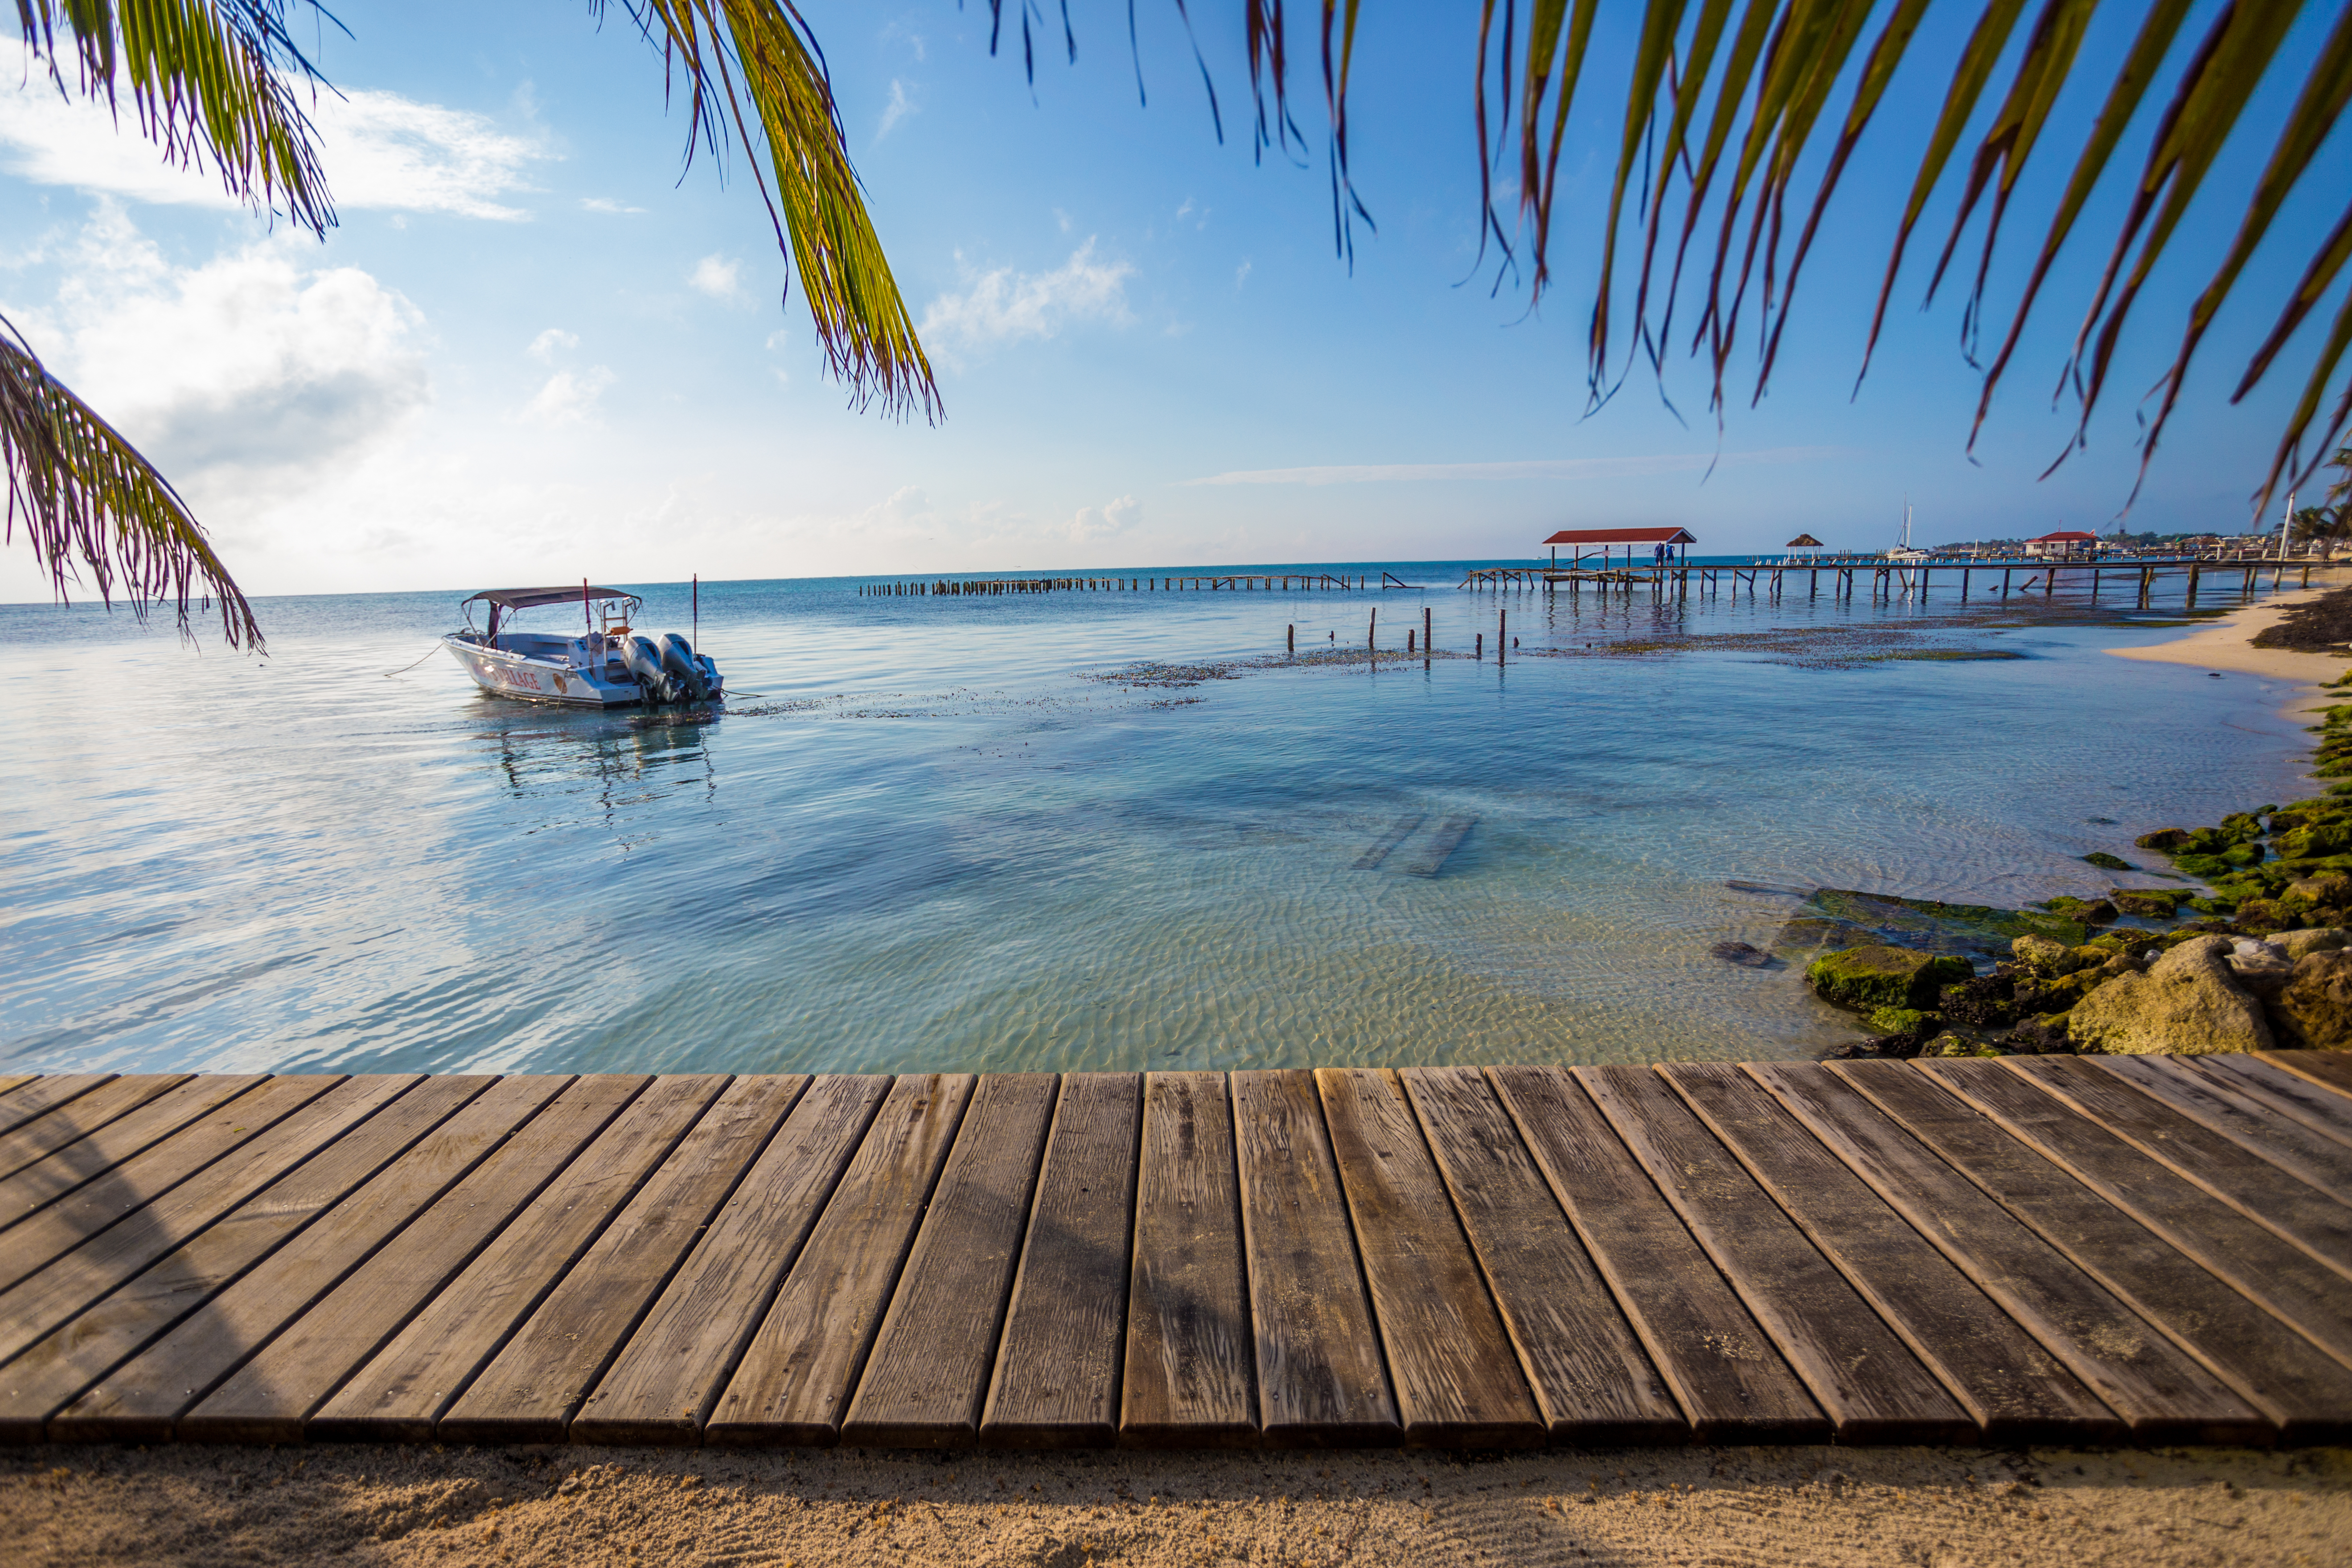 A scenic beach view showing a wooden boardwalk at the waters edge, framed by palm leaves. The crystal clear water against a bright blue sky. A pier damaged by a recent hurricane can also be seen in the background.